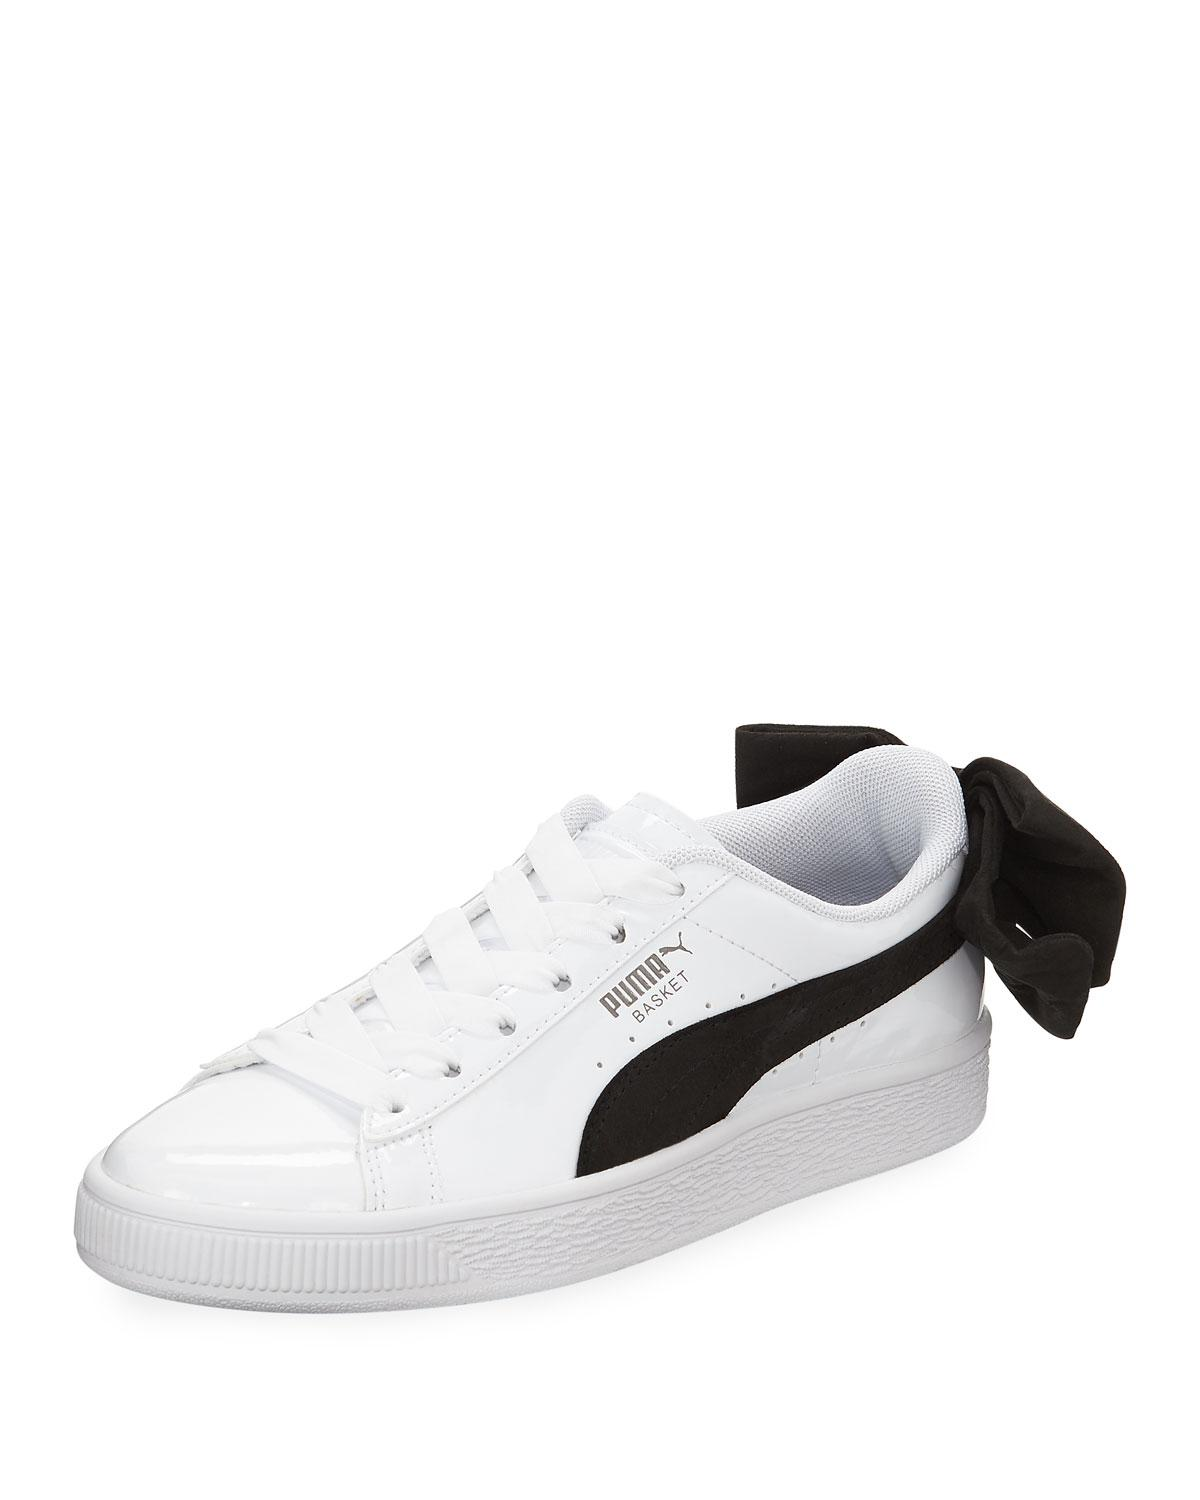 Lyst - Puma Basket Bow Two-tone Leather Sneakers in White f8f5204be